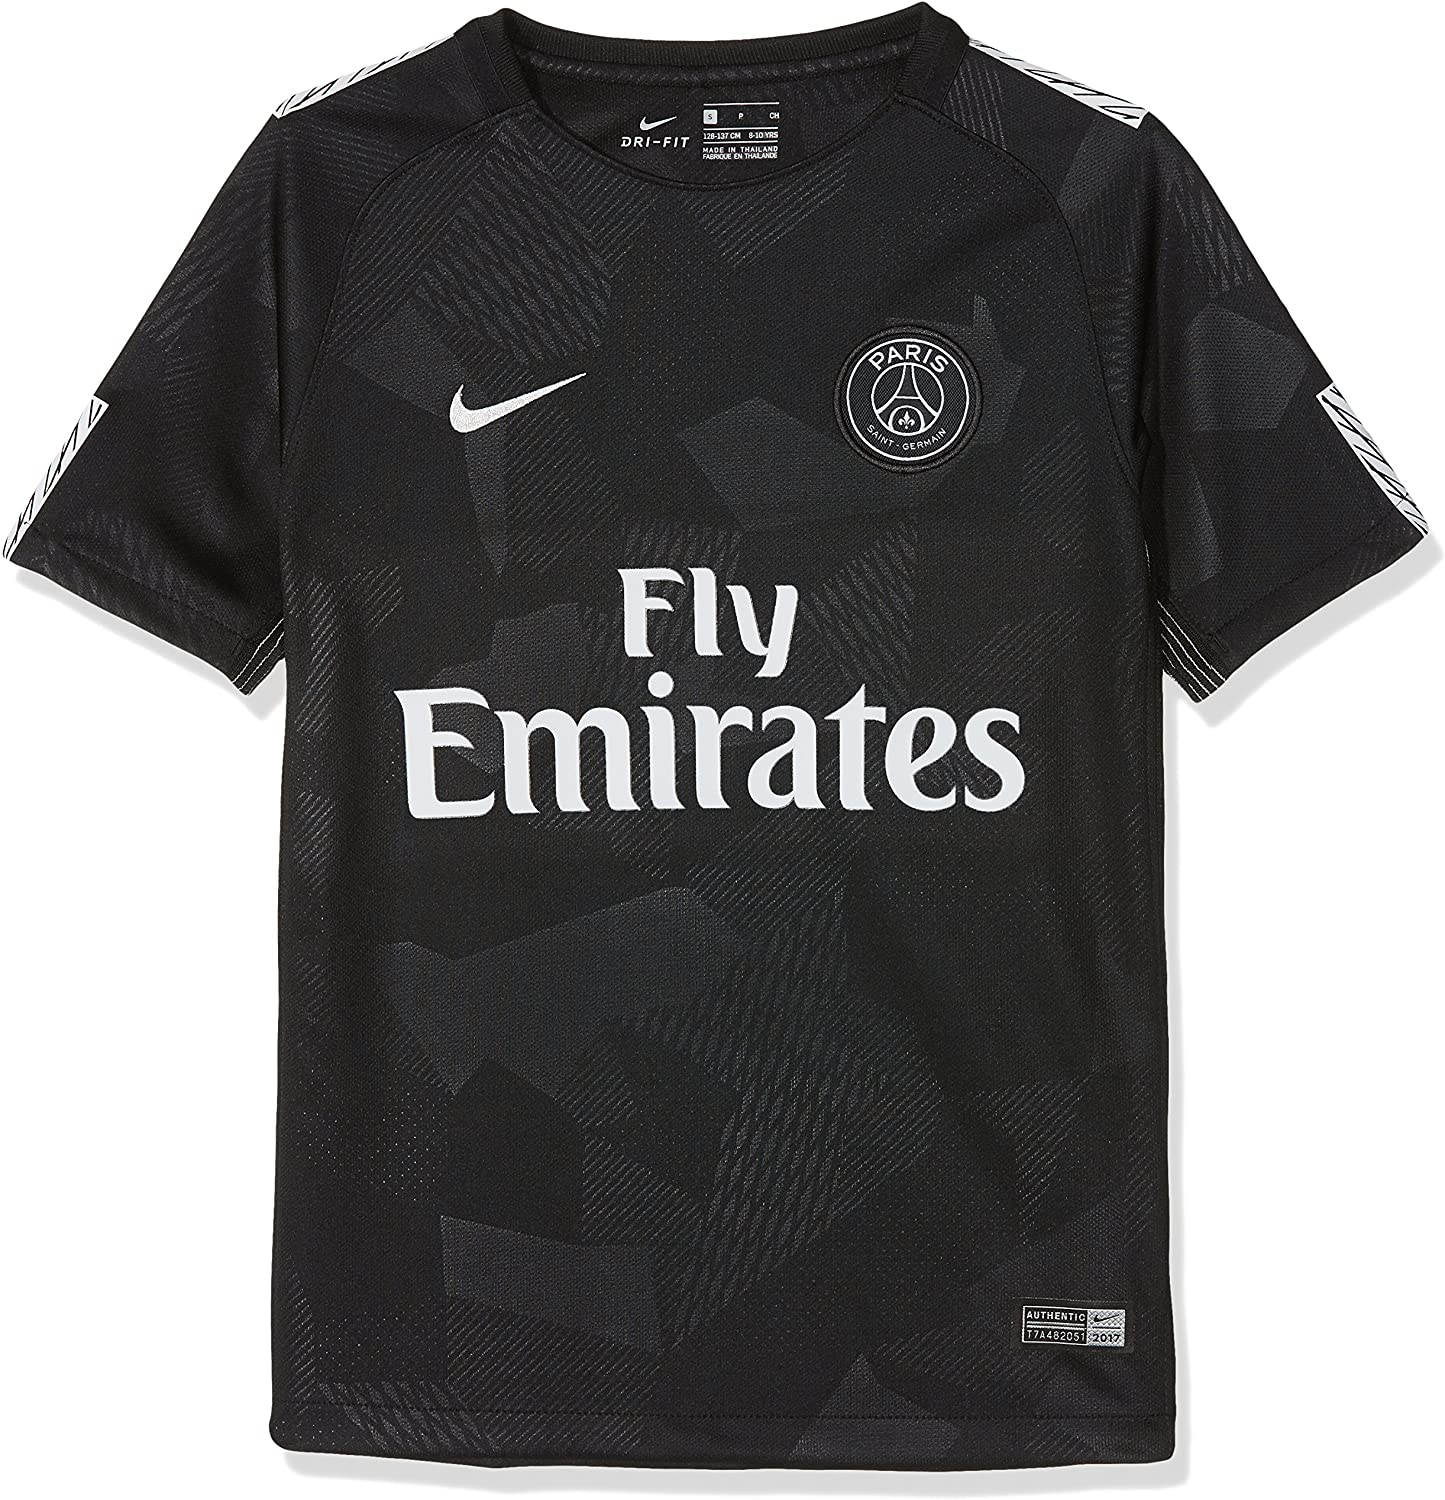 Nike 847407 011 Maillot de Football Enfant: